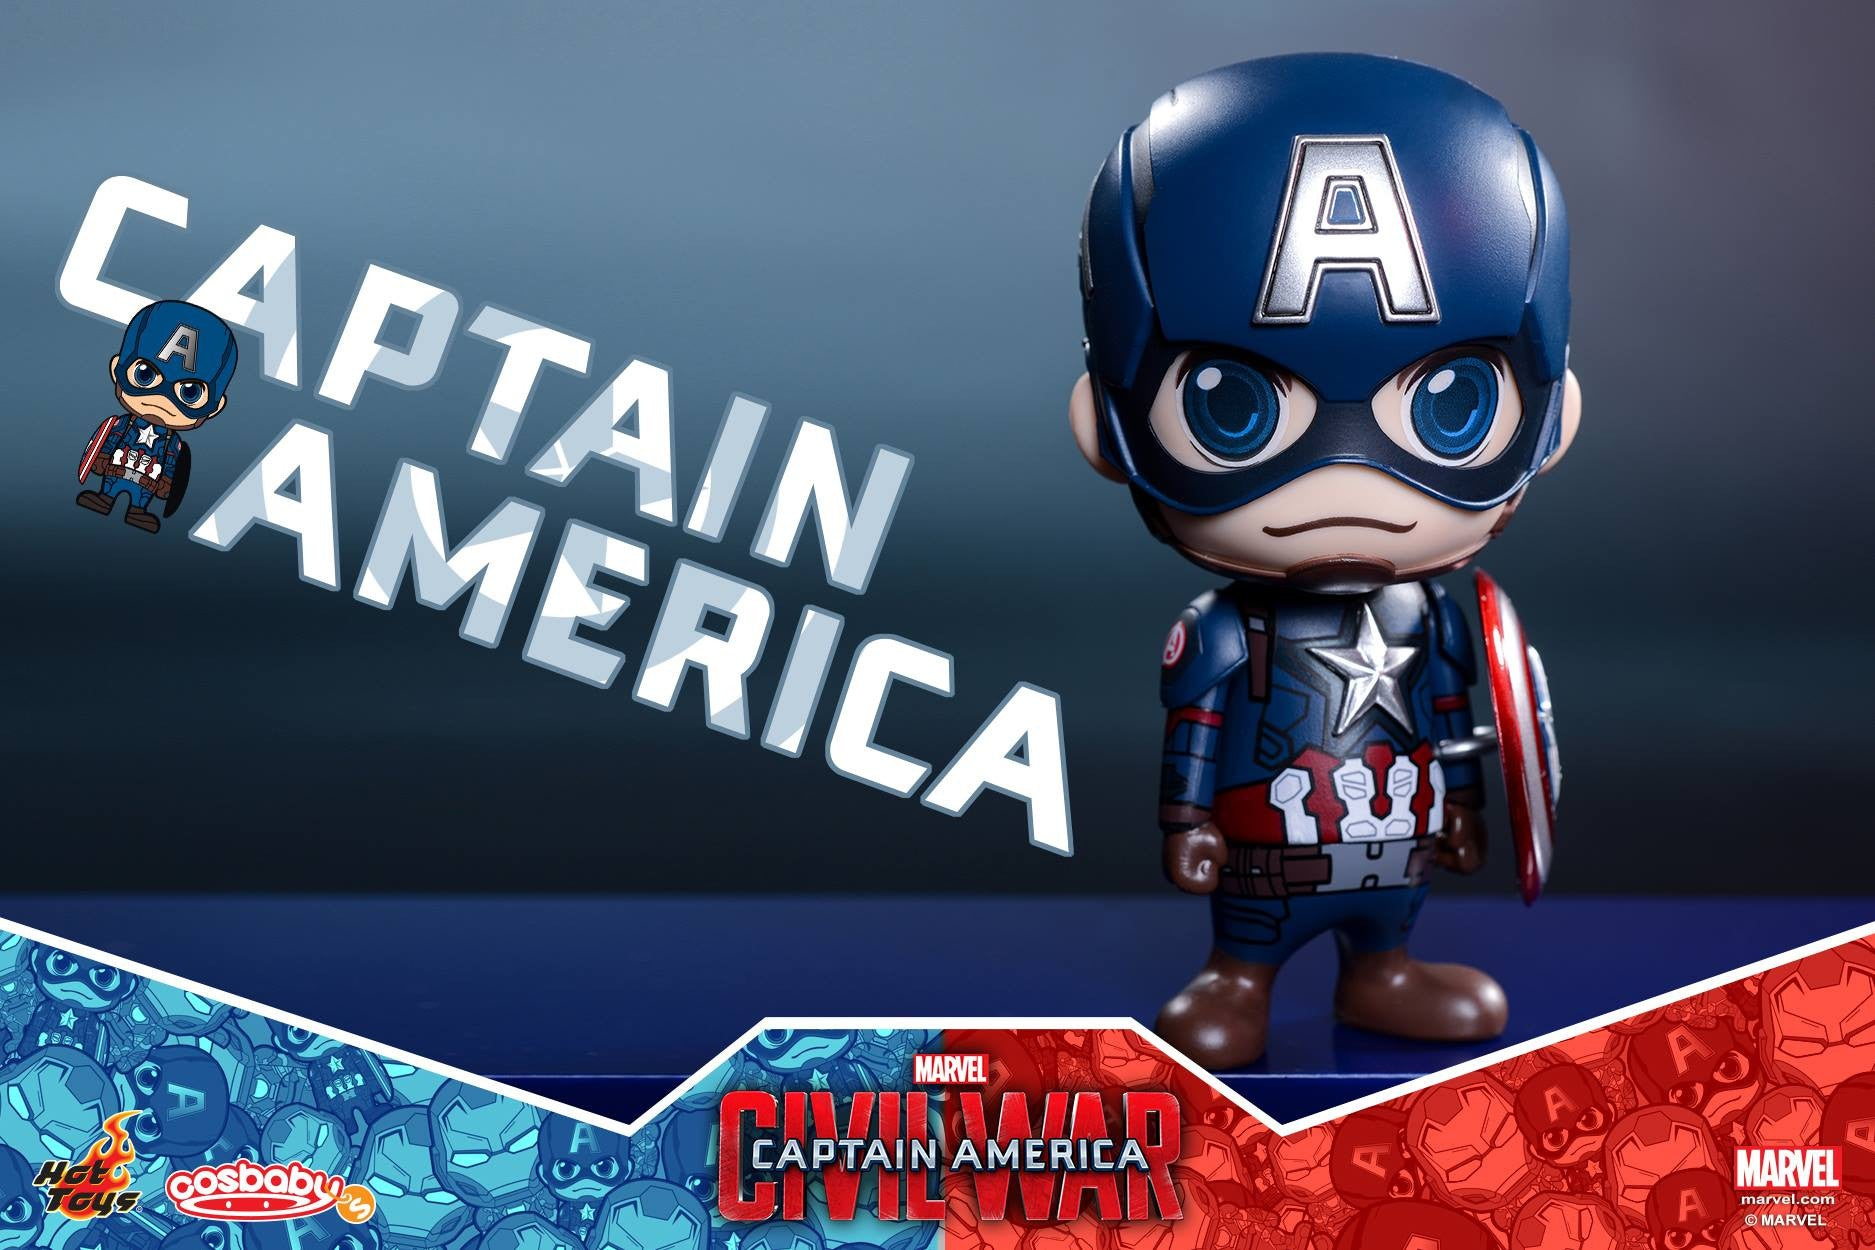 Hot Toys - COSB199-200 - Captain America: Civil War - Captain America & Iron Man Mark XLVI Cosbaby Bobble-Head Set - Marvelous Toys - 5